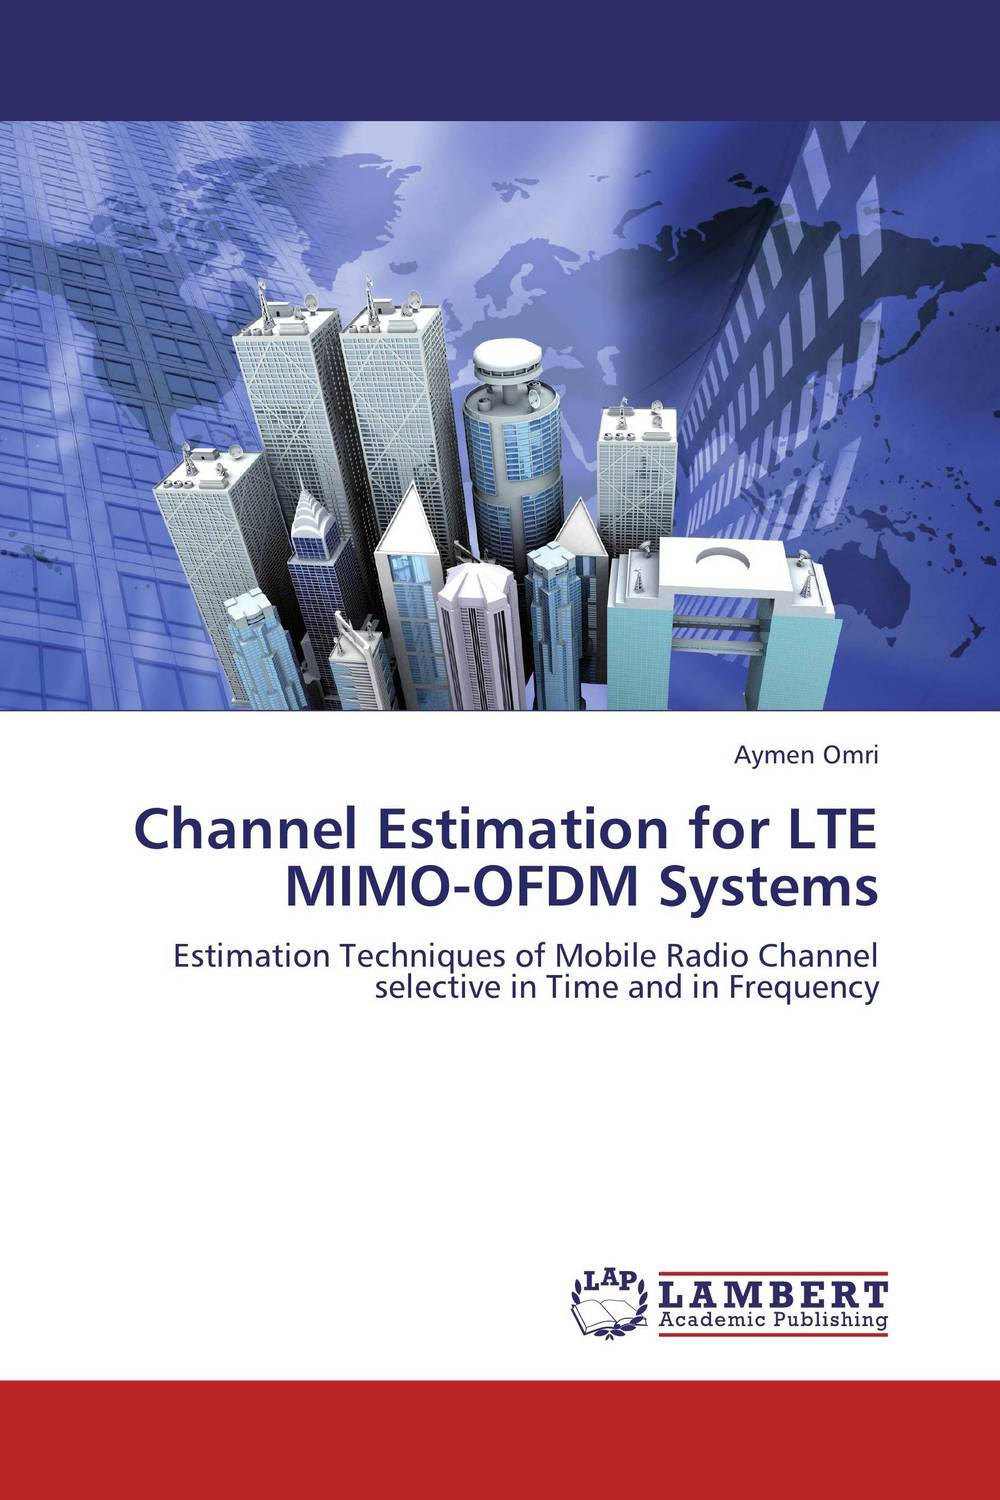 Channel Estimation for     LTE MIMO-OFDM Systems interference cancellation methods in mimo ofdm systems